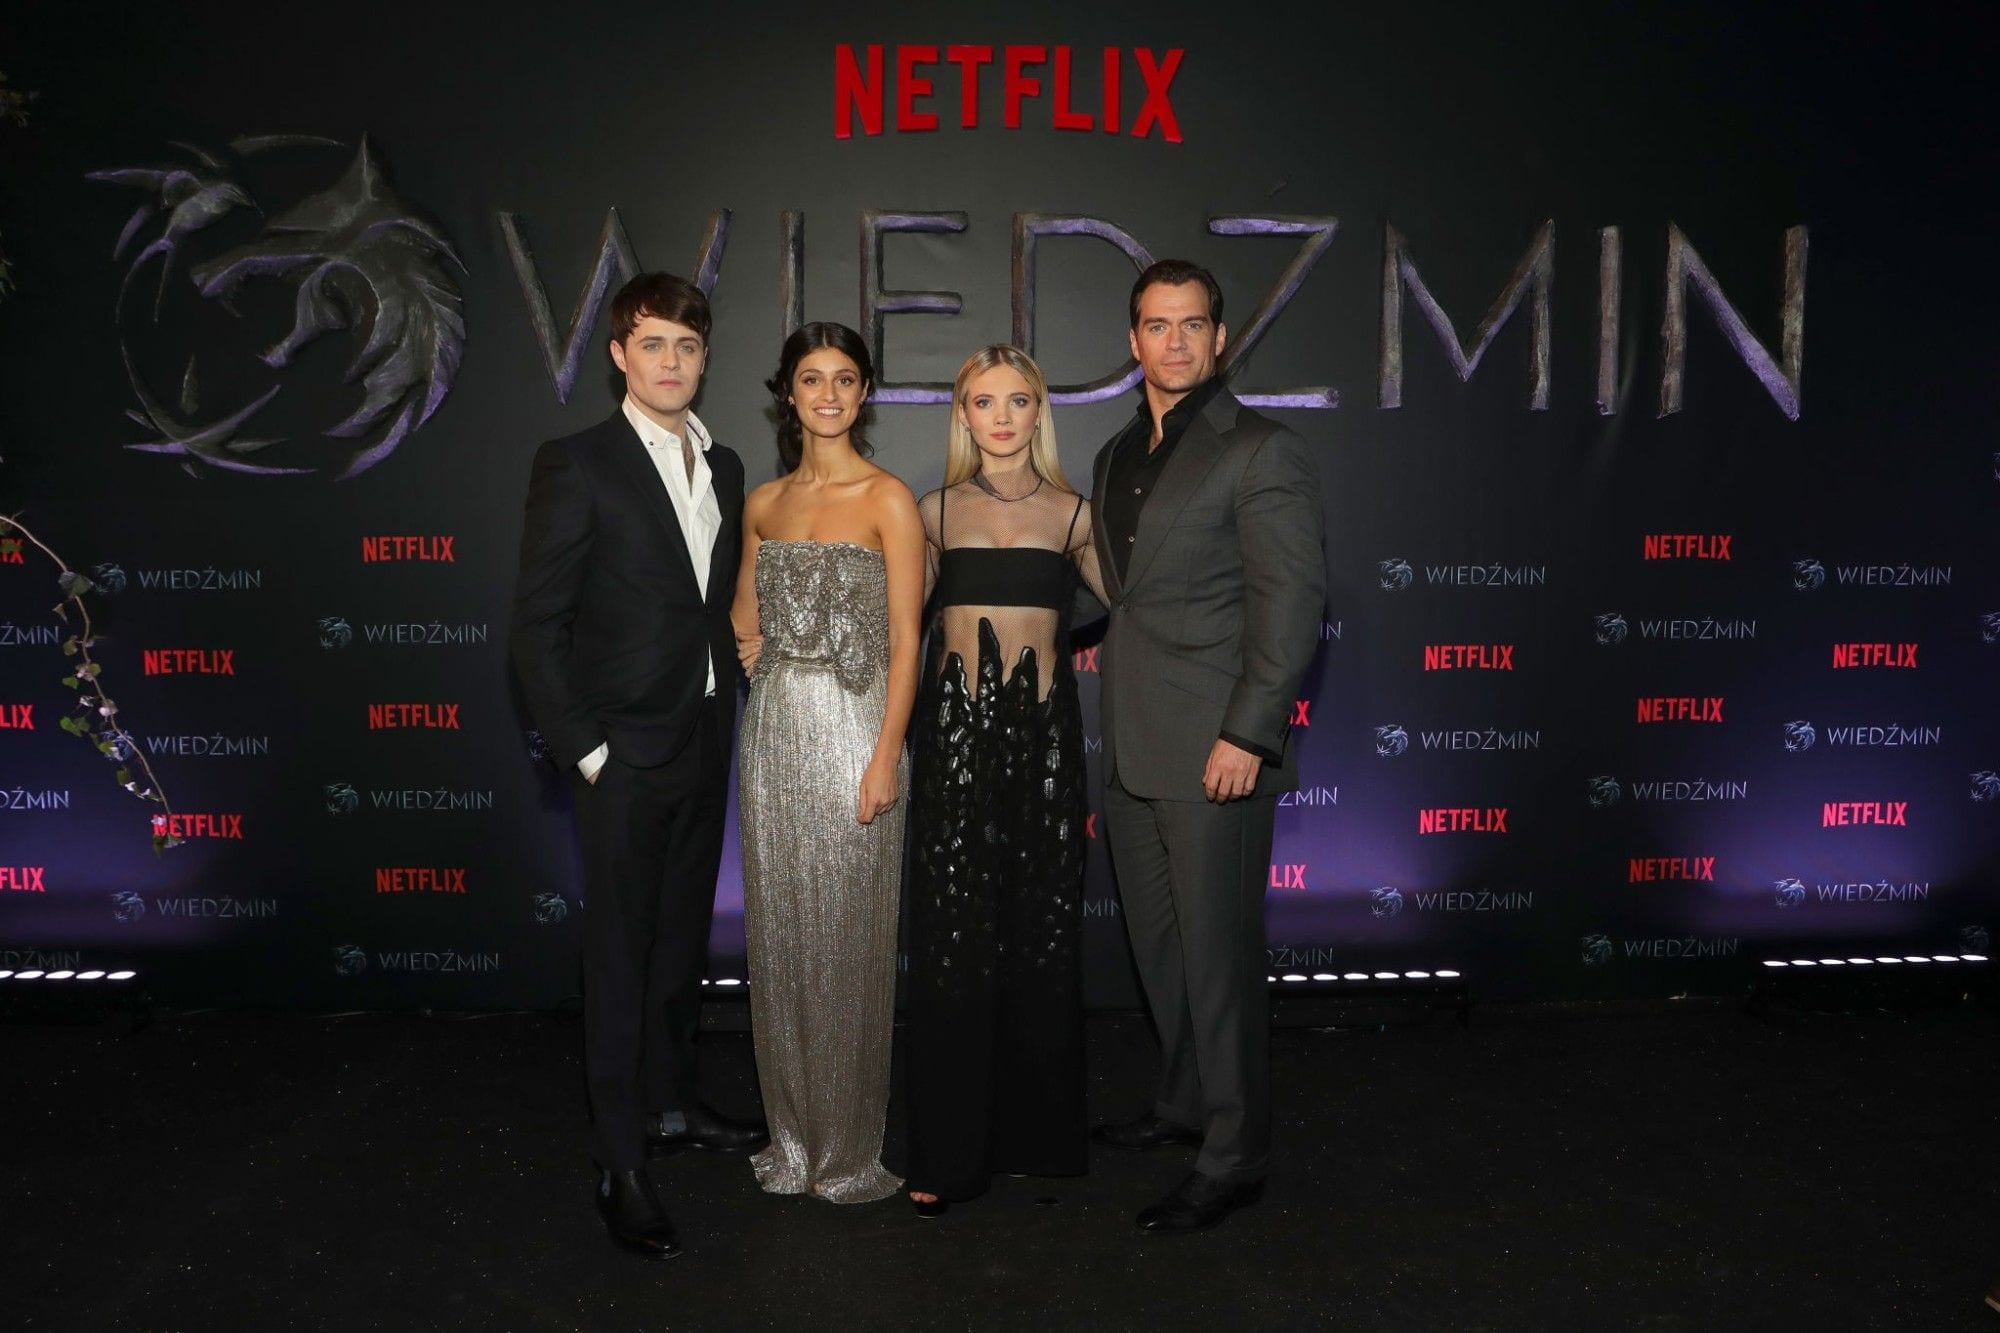 Cast of Netflix's The Witcher Polish Premiere Warsaw Poland